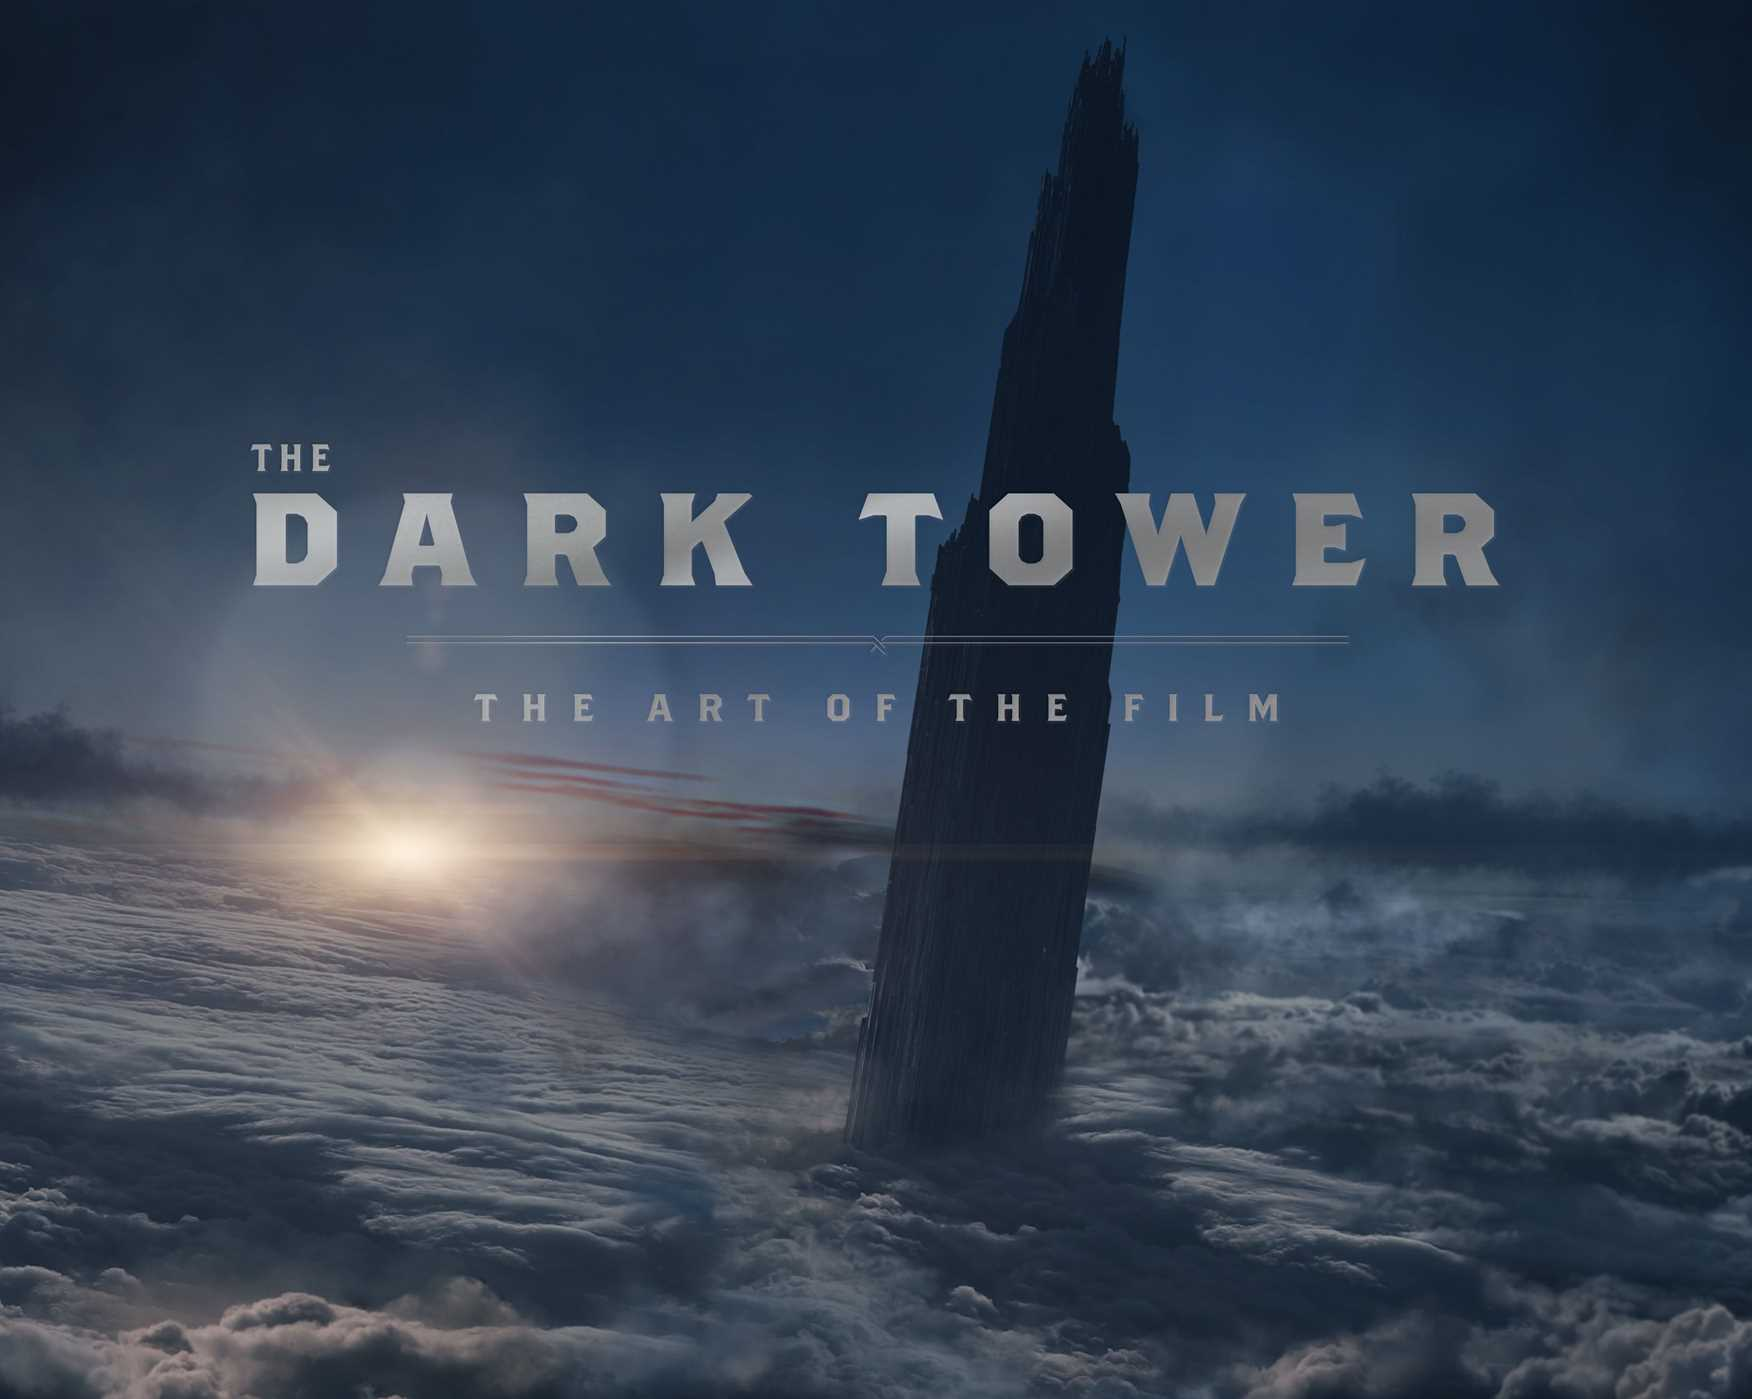 the dark tower the art of the film book by daniel